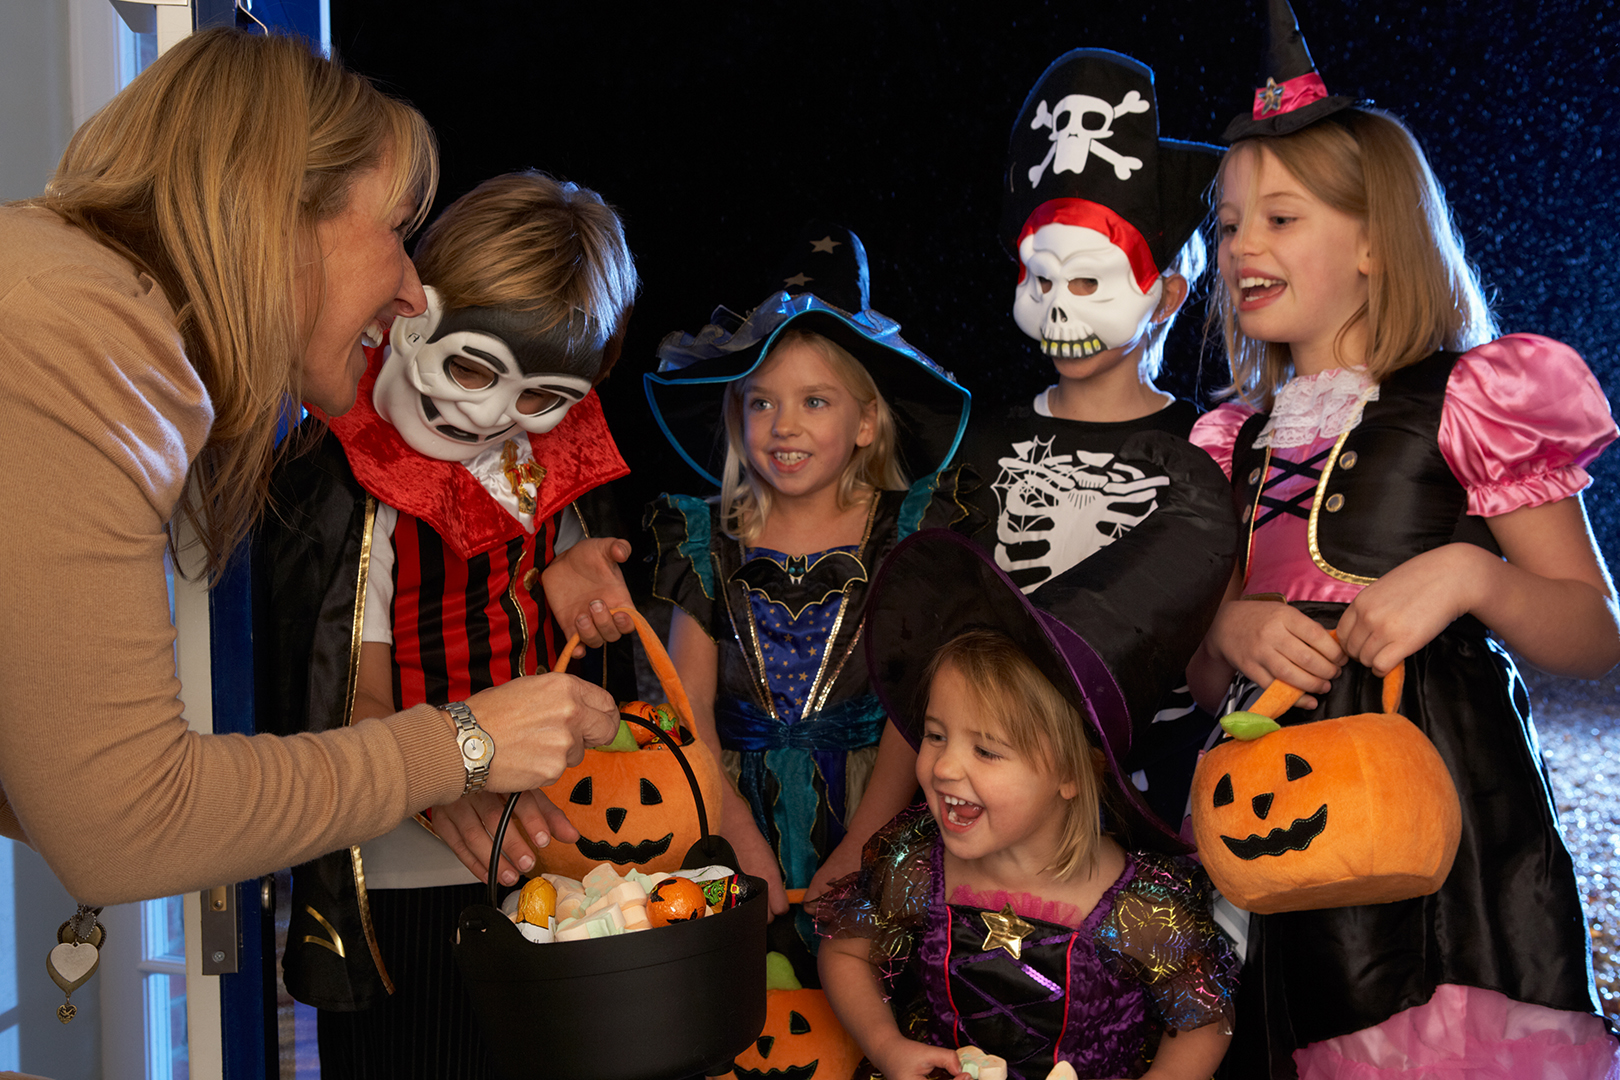 Kids Dressed Up For Trick-Or-Treating